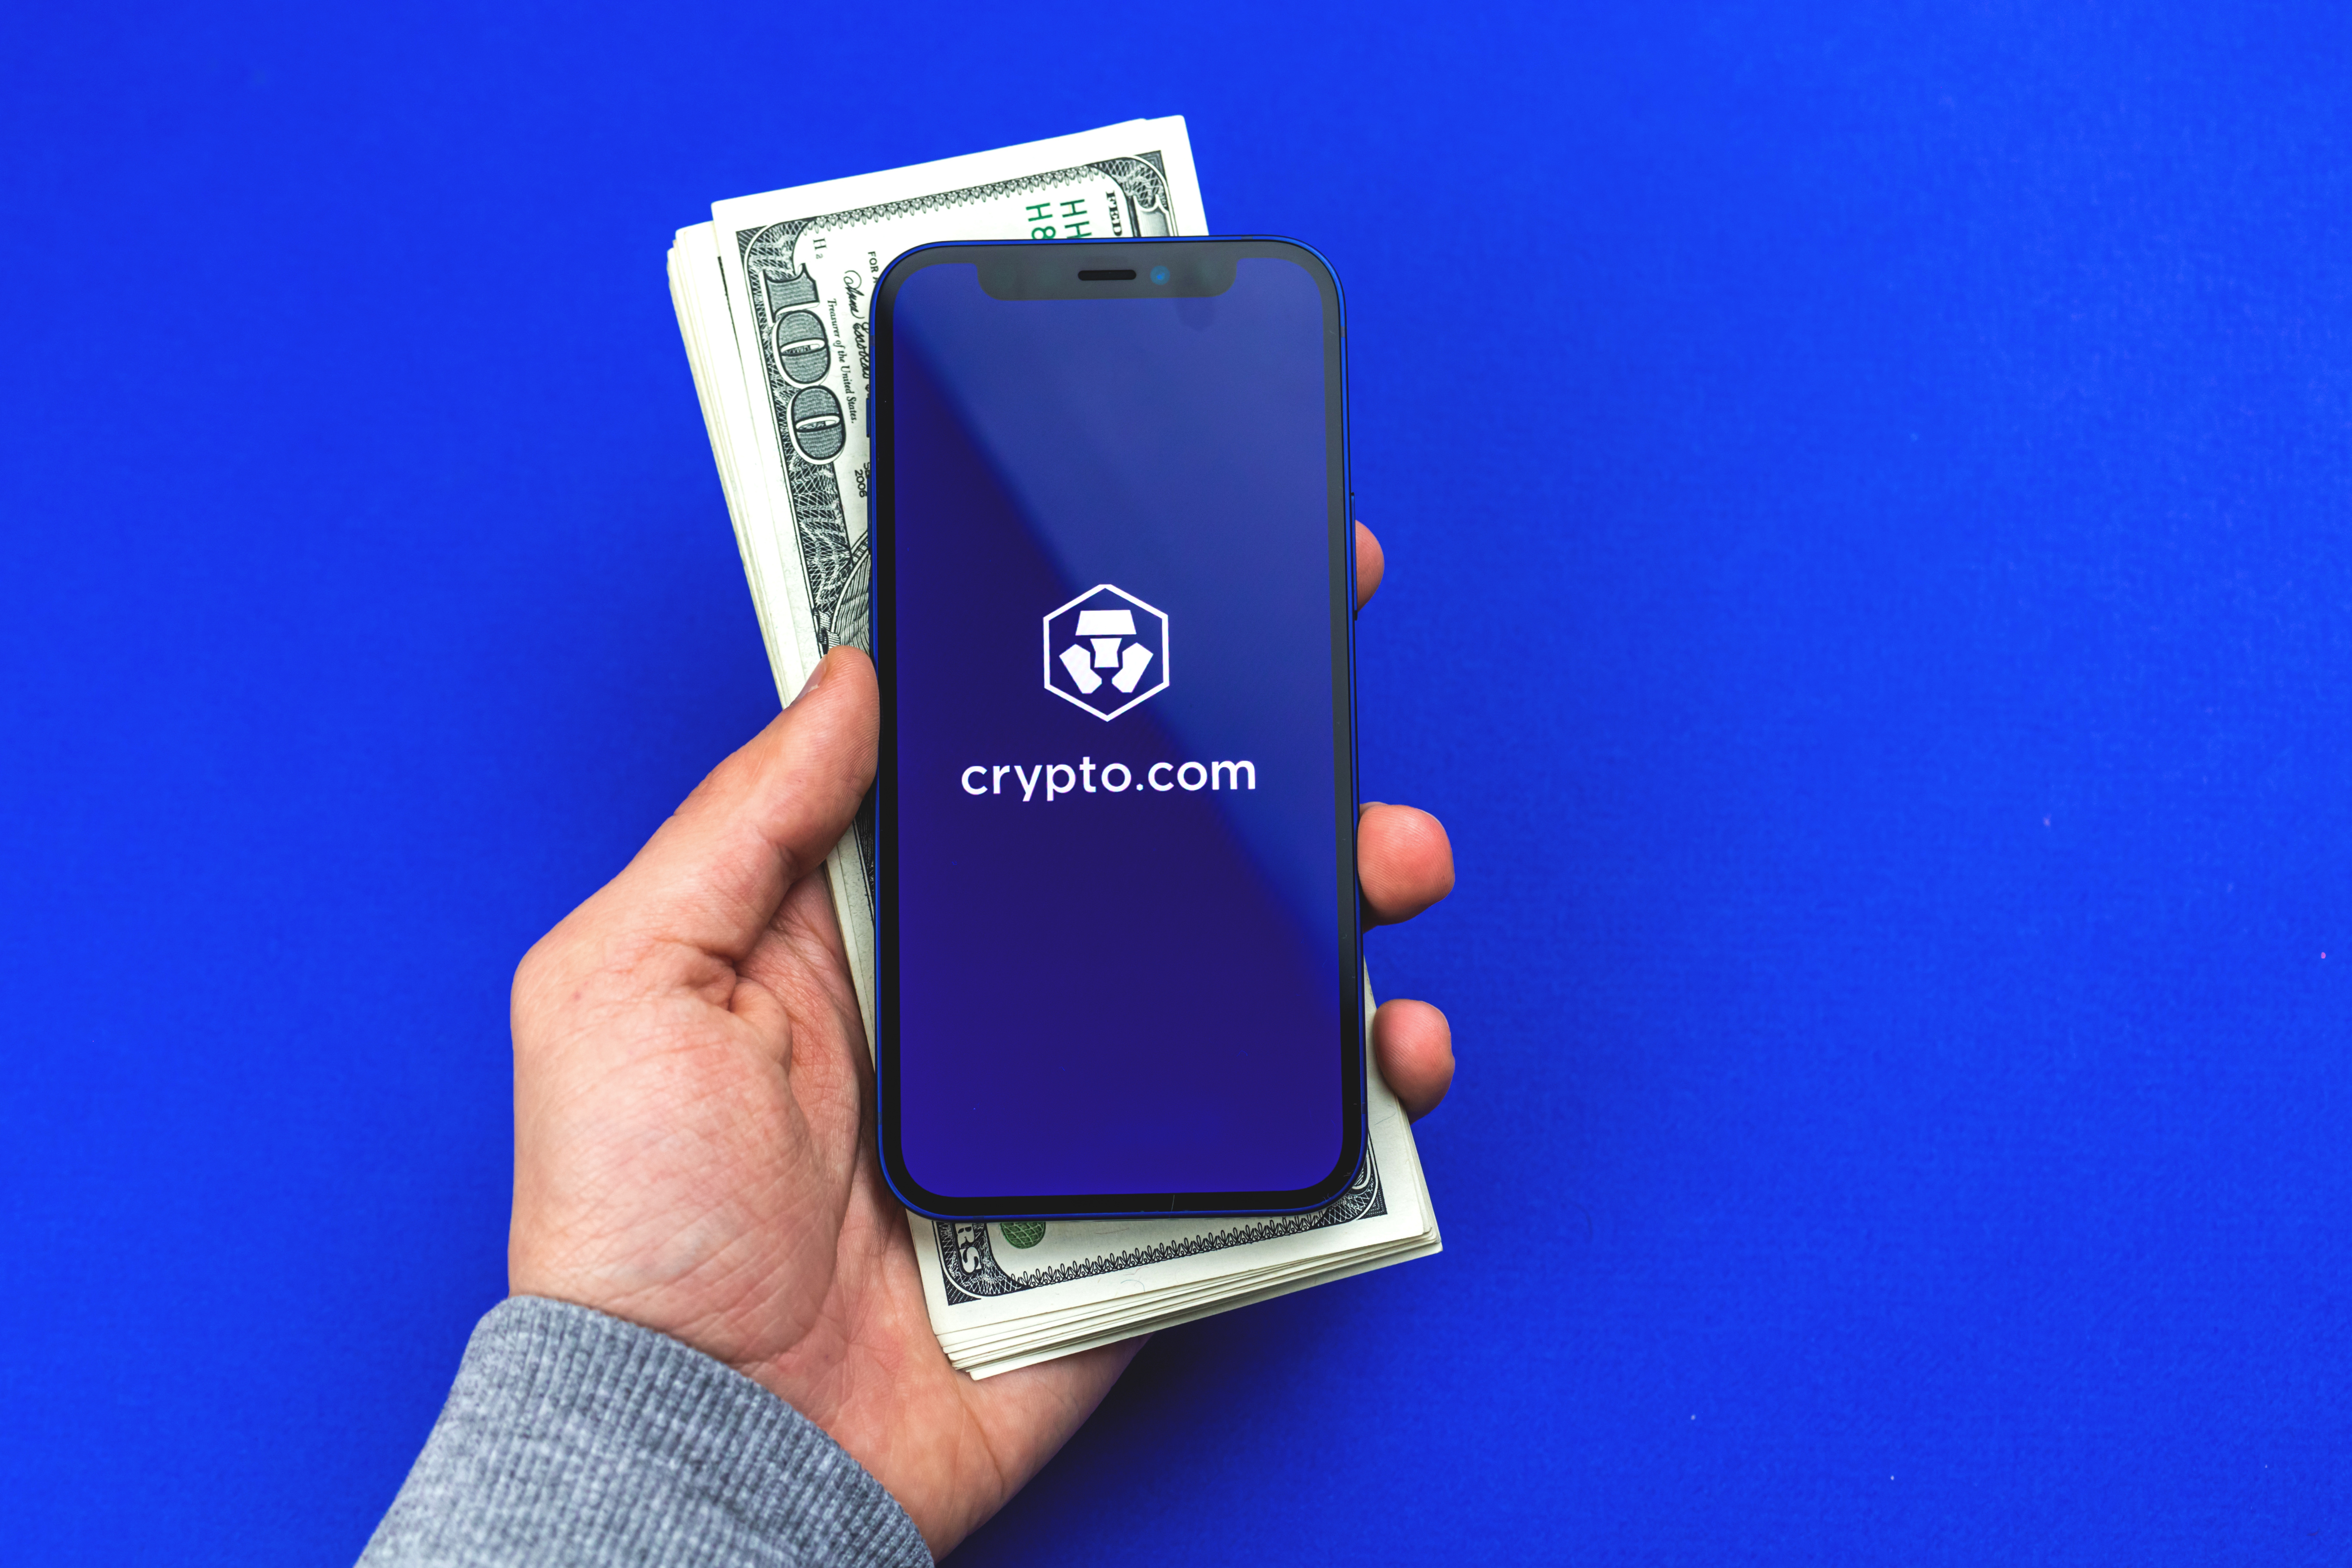 Crypto.com Expands Insurance Programme to One of the Industry's Largest at USD 750 Million